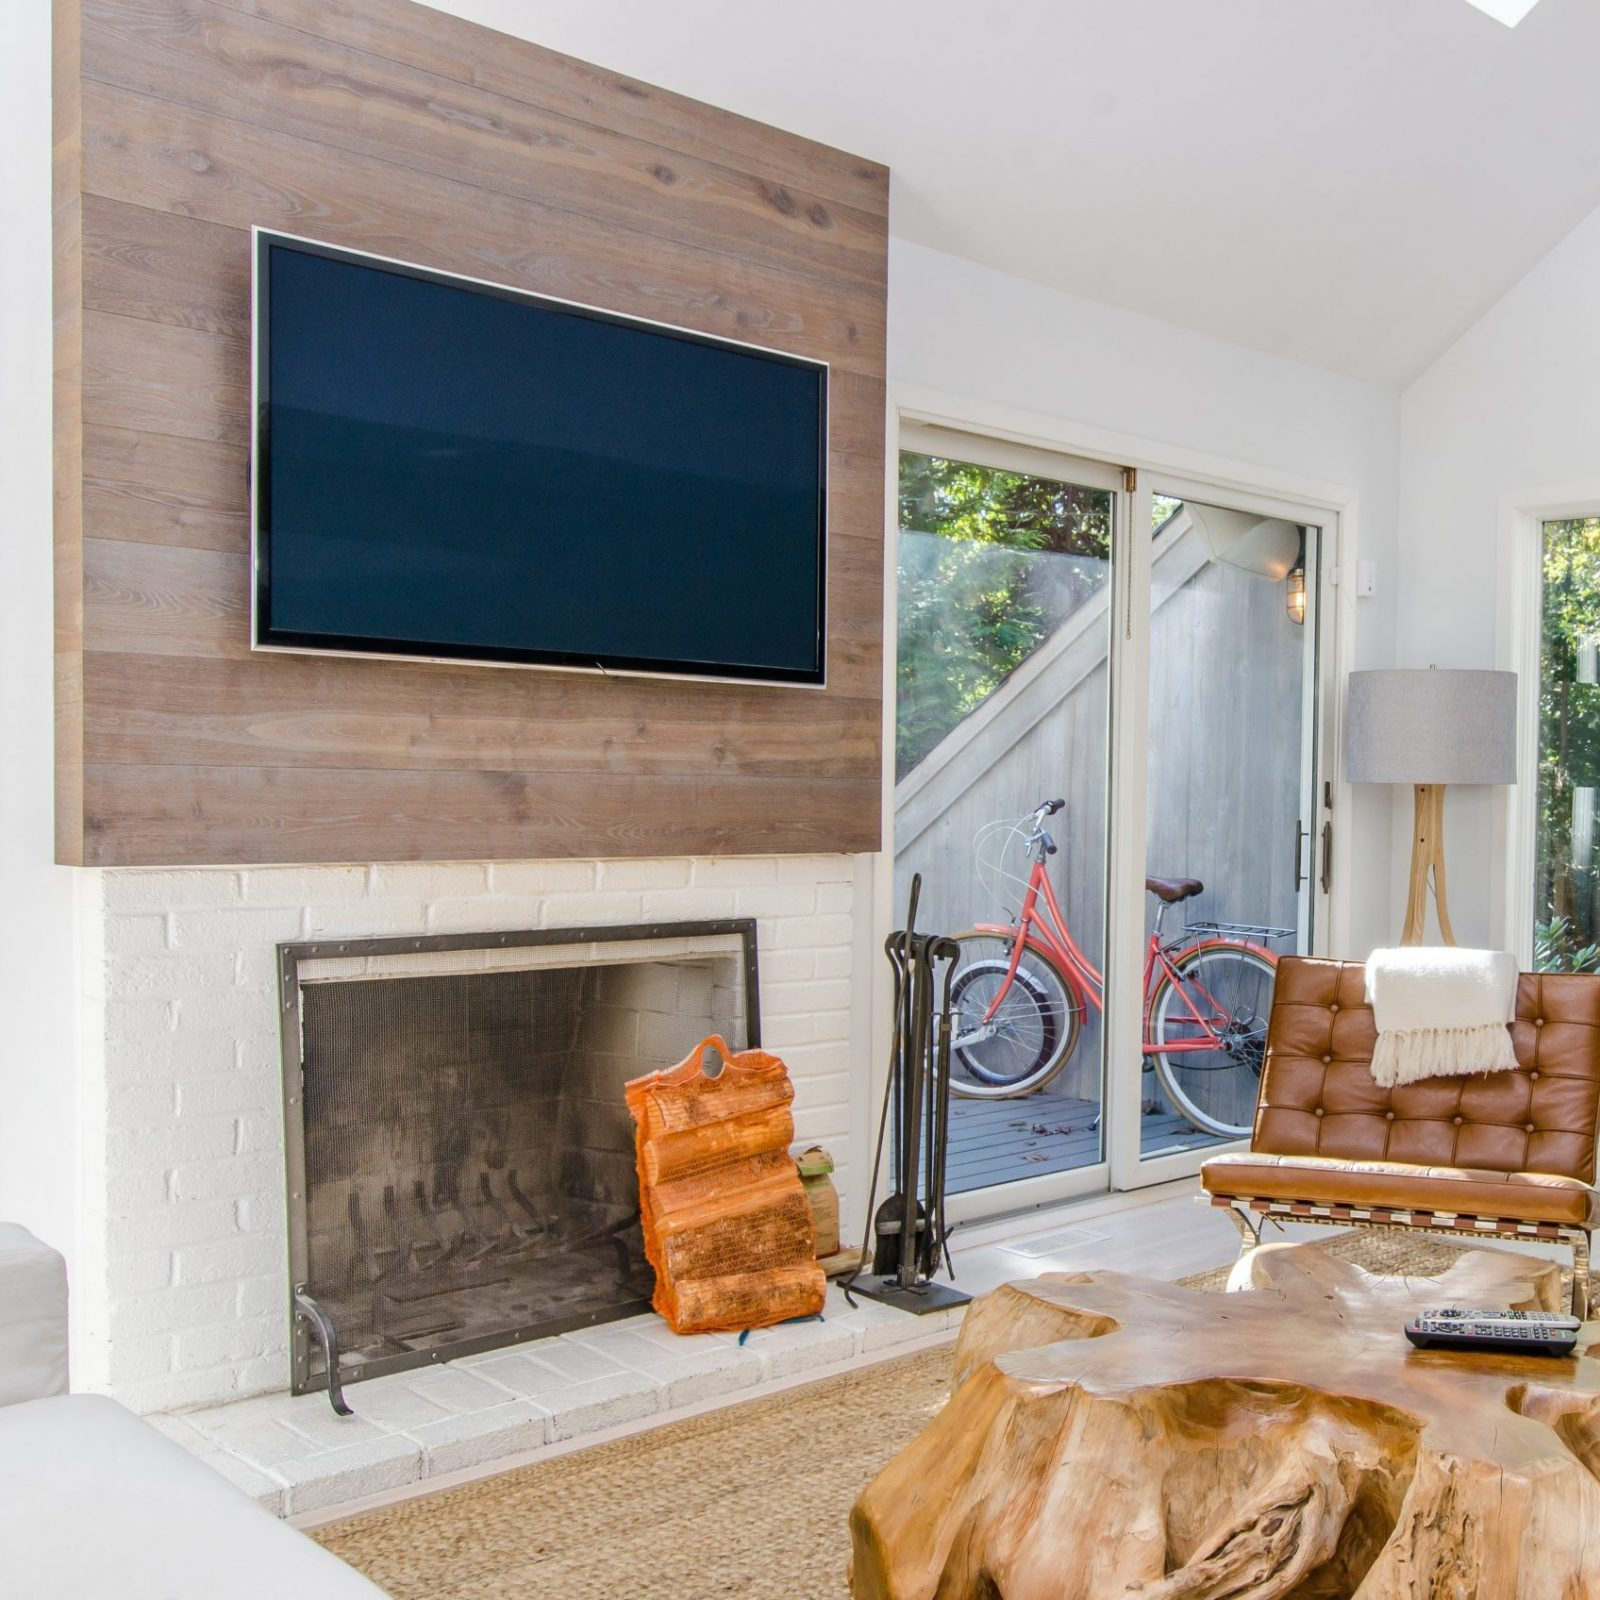 A Flat Panel Television mounted on a wood wall above a fireplace in a living room.